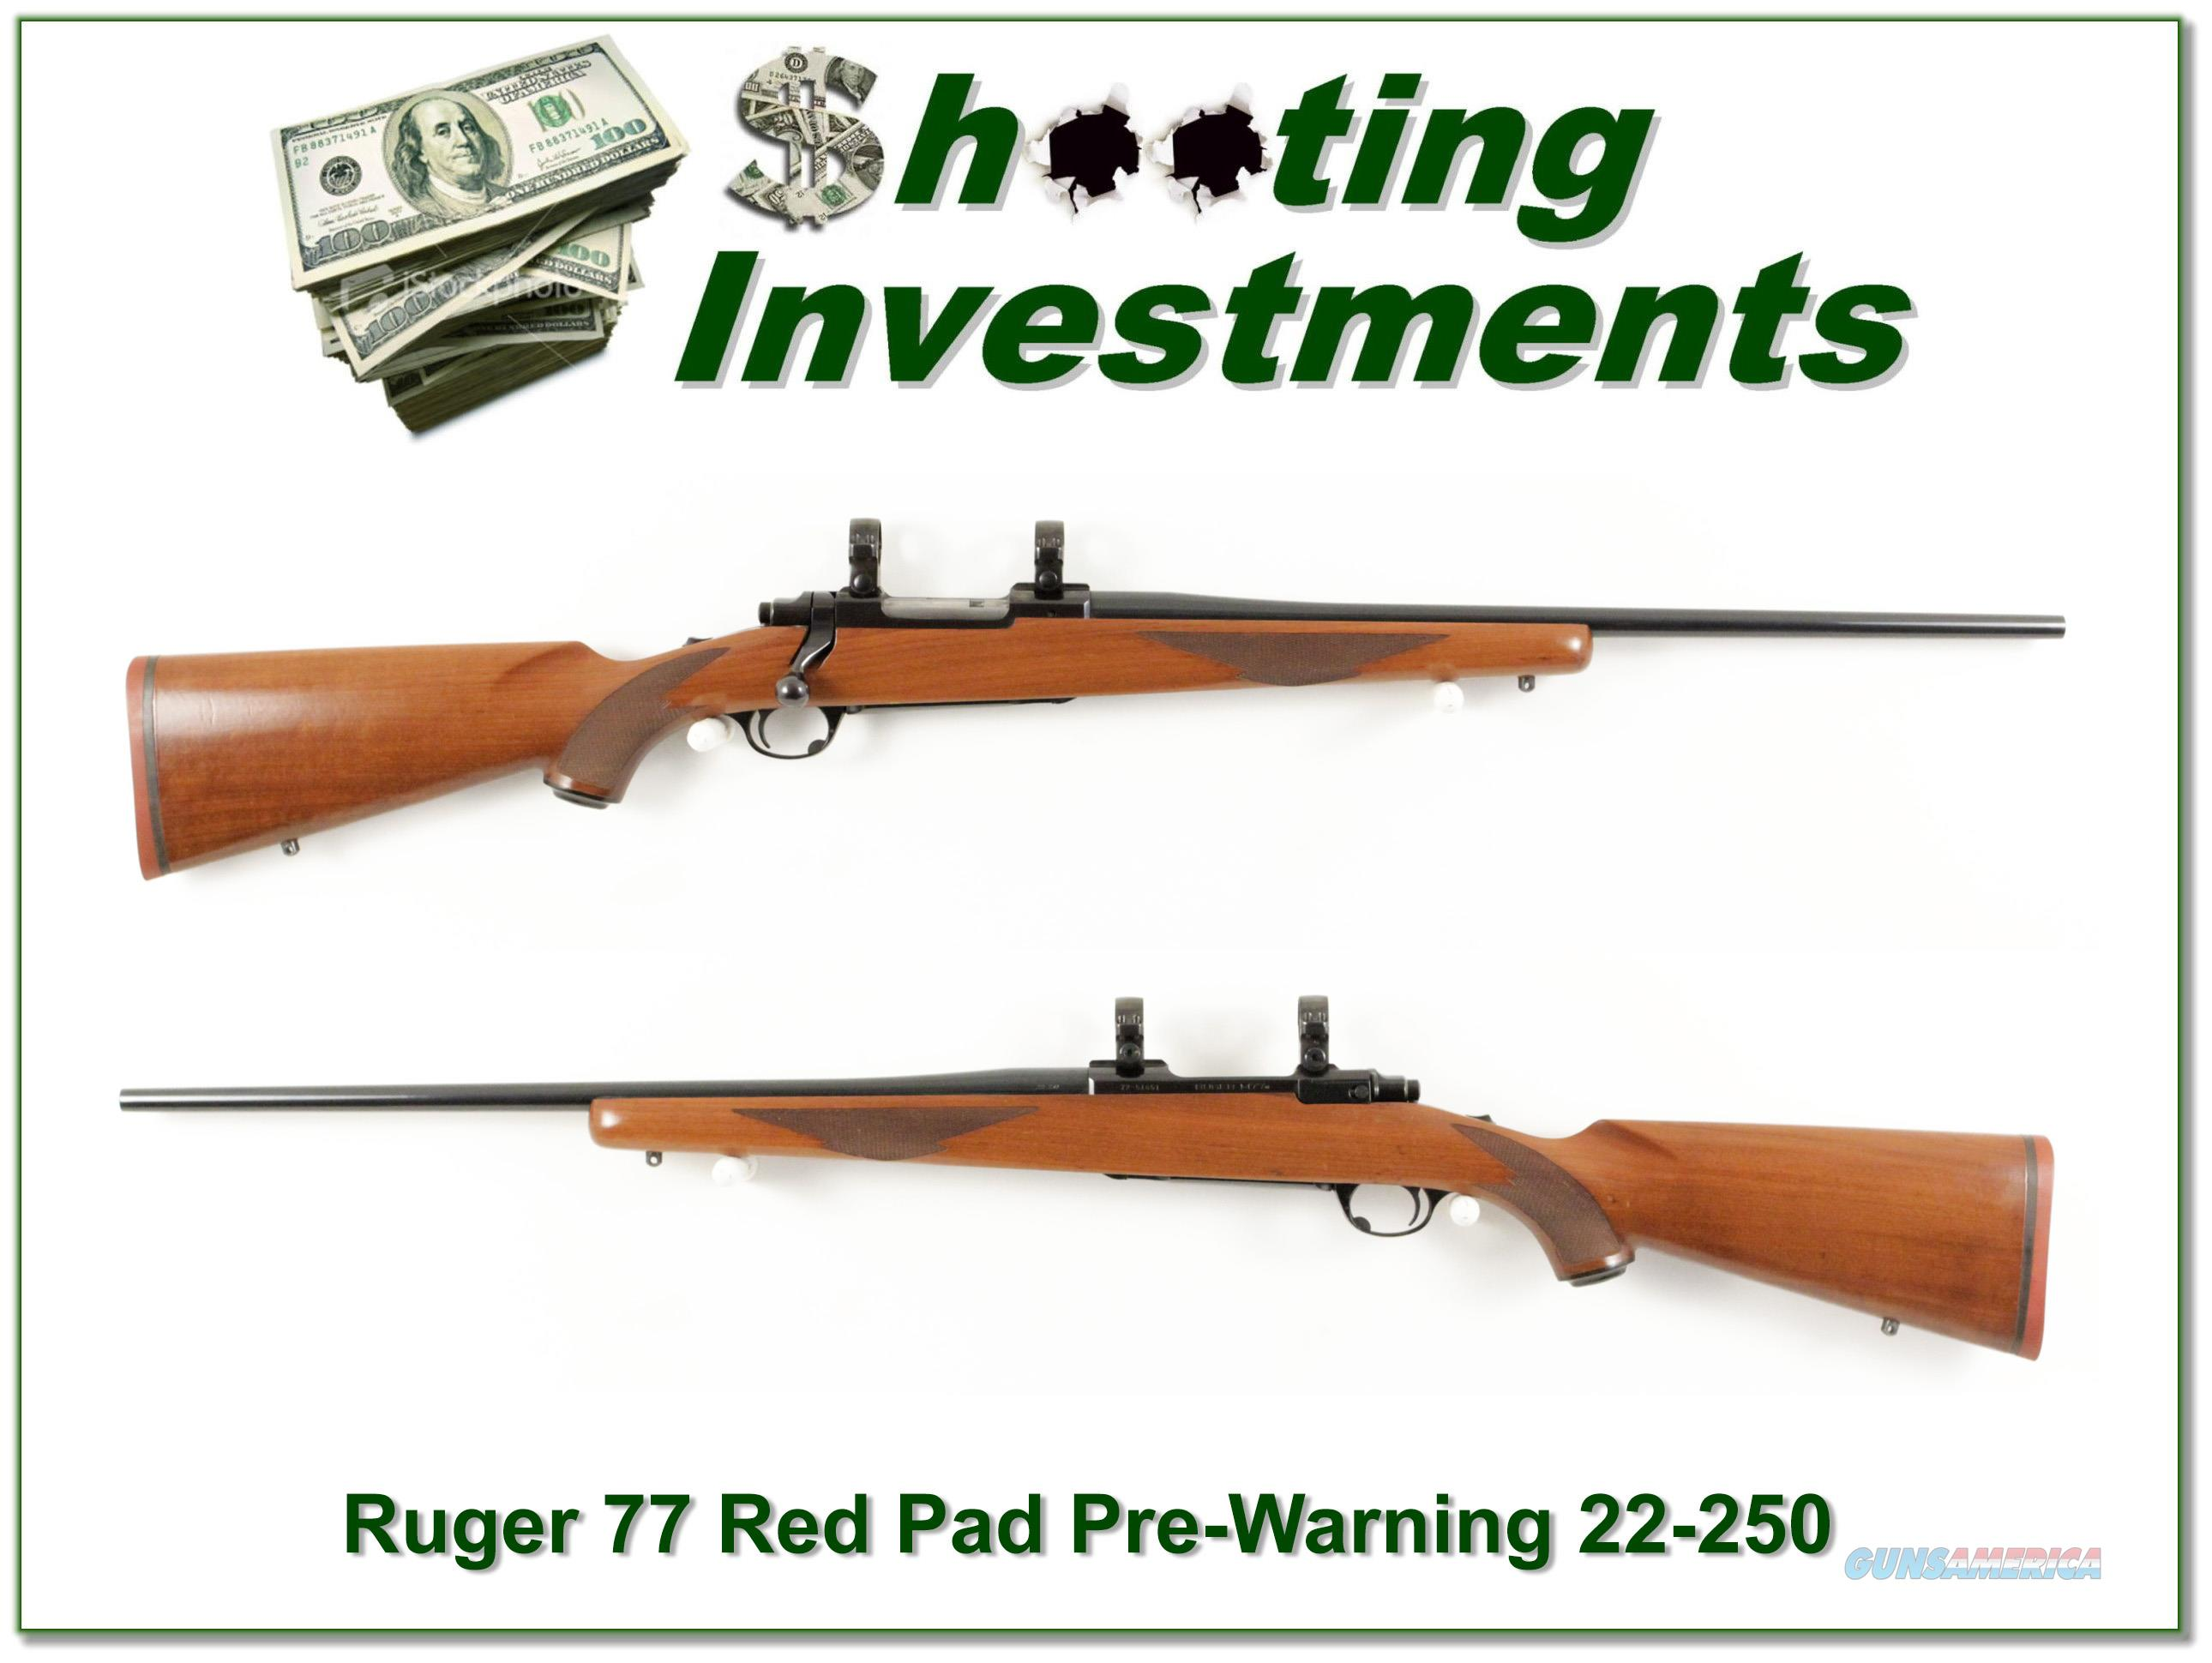 Ruger 77 22-250 Rem Red Pad Pre-warning  Guns > Rifles > Ruger Rifles > Model 77